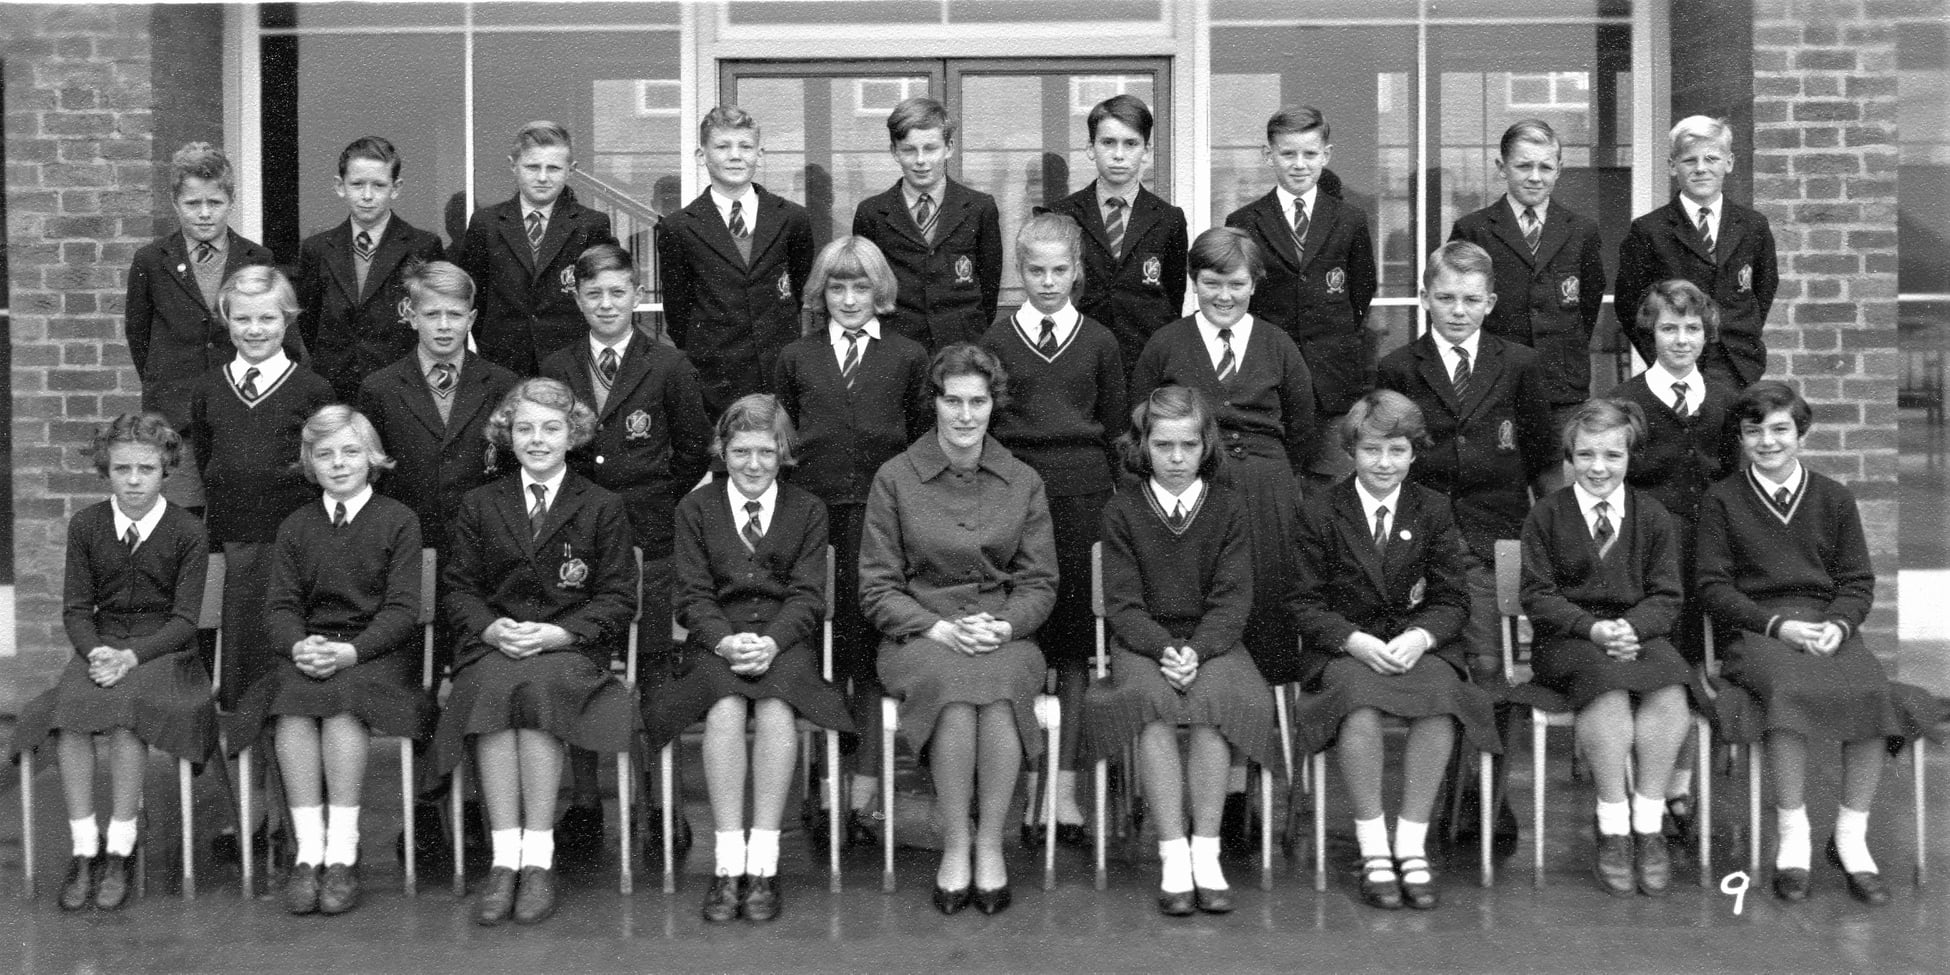 Withernsea High School 1960 class 1A